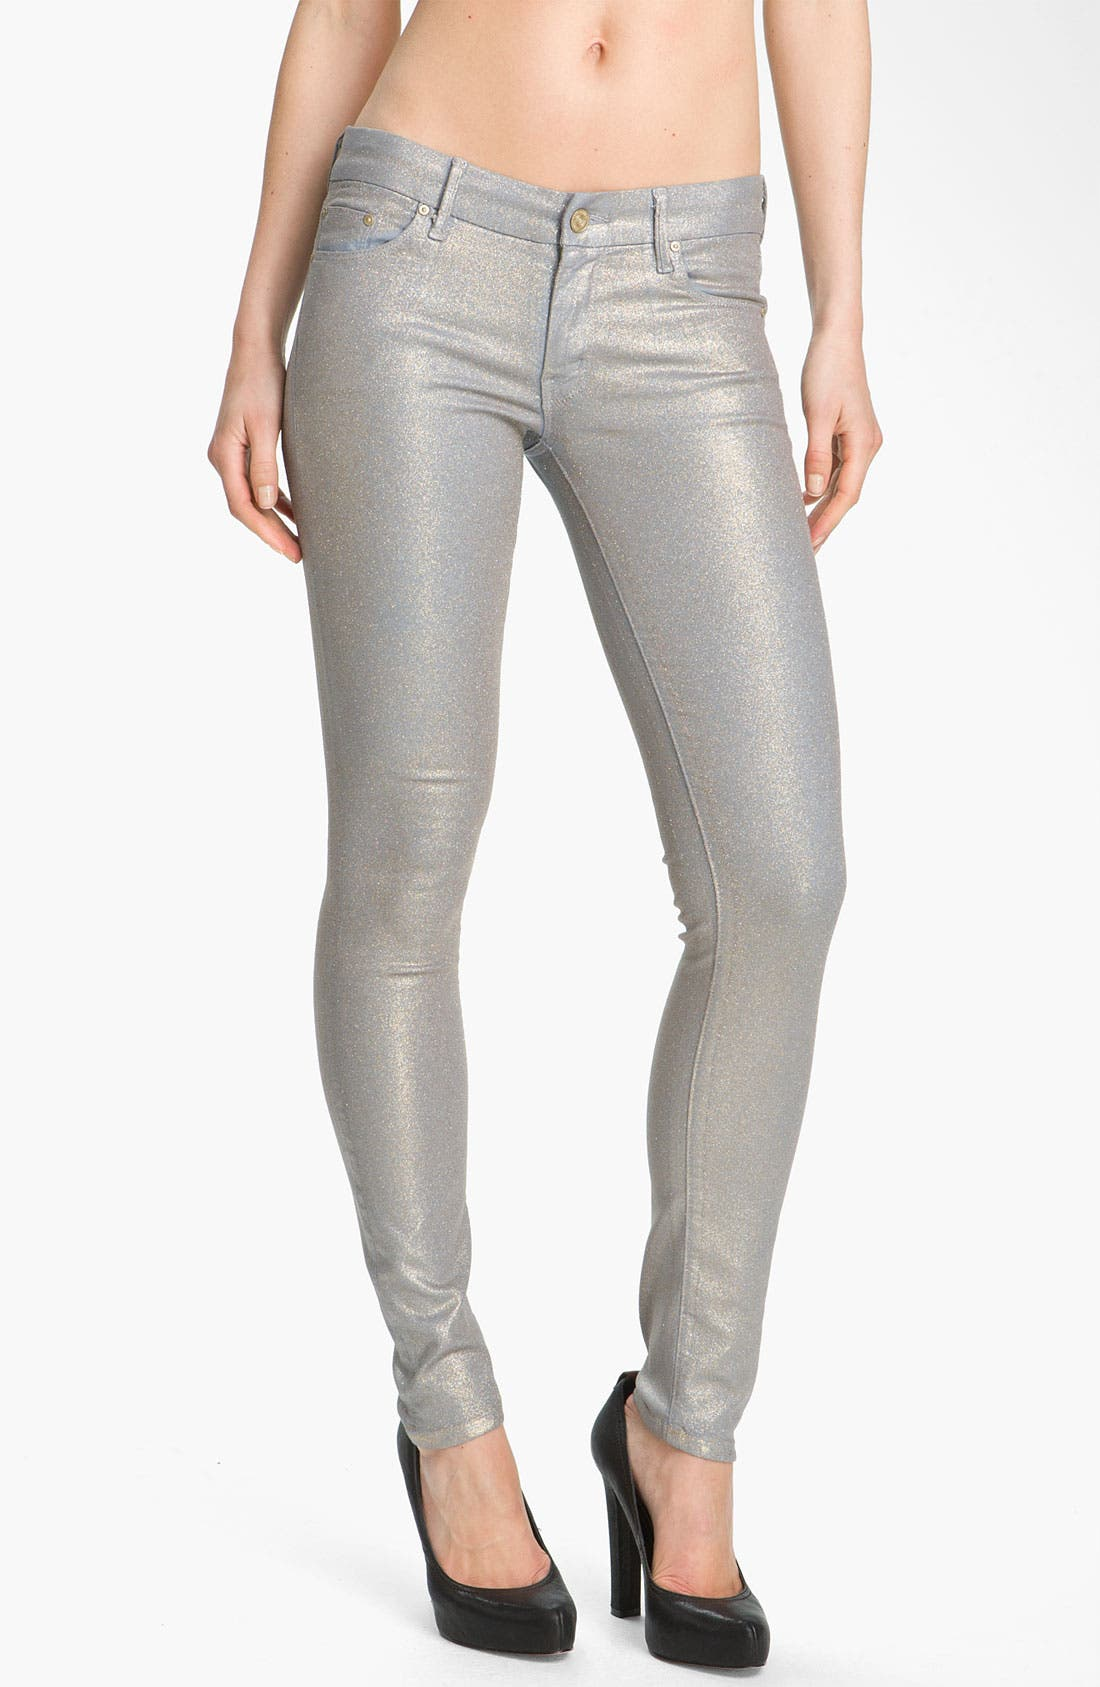 'The Looker' Skinny Stretch Jeans,                             Main thumbnail 1, color,                             Powder Blue Glimmer